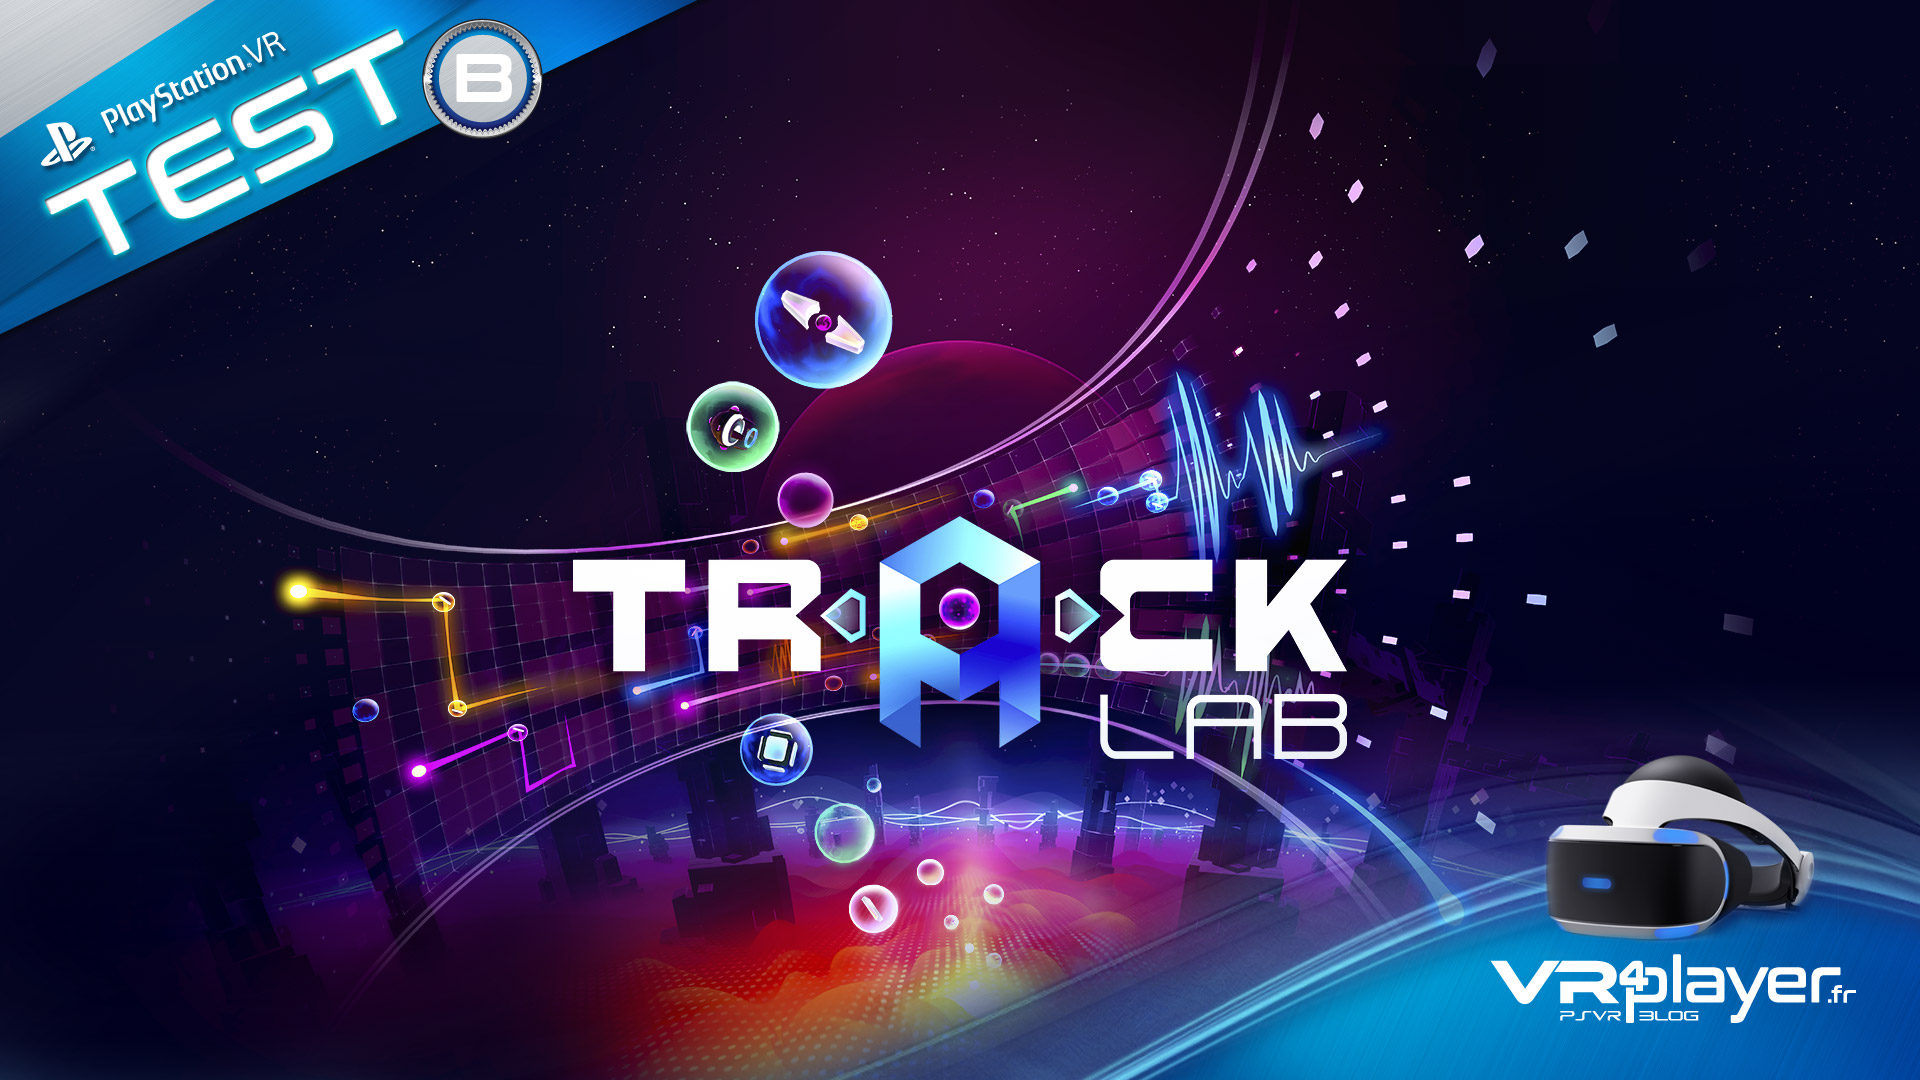 Test de Track Lab sur PlayStation VR vr4player.fr